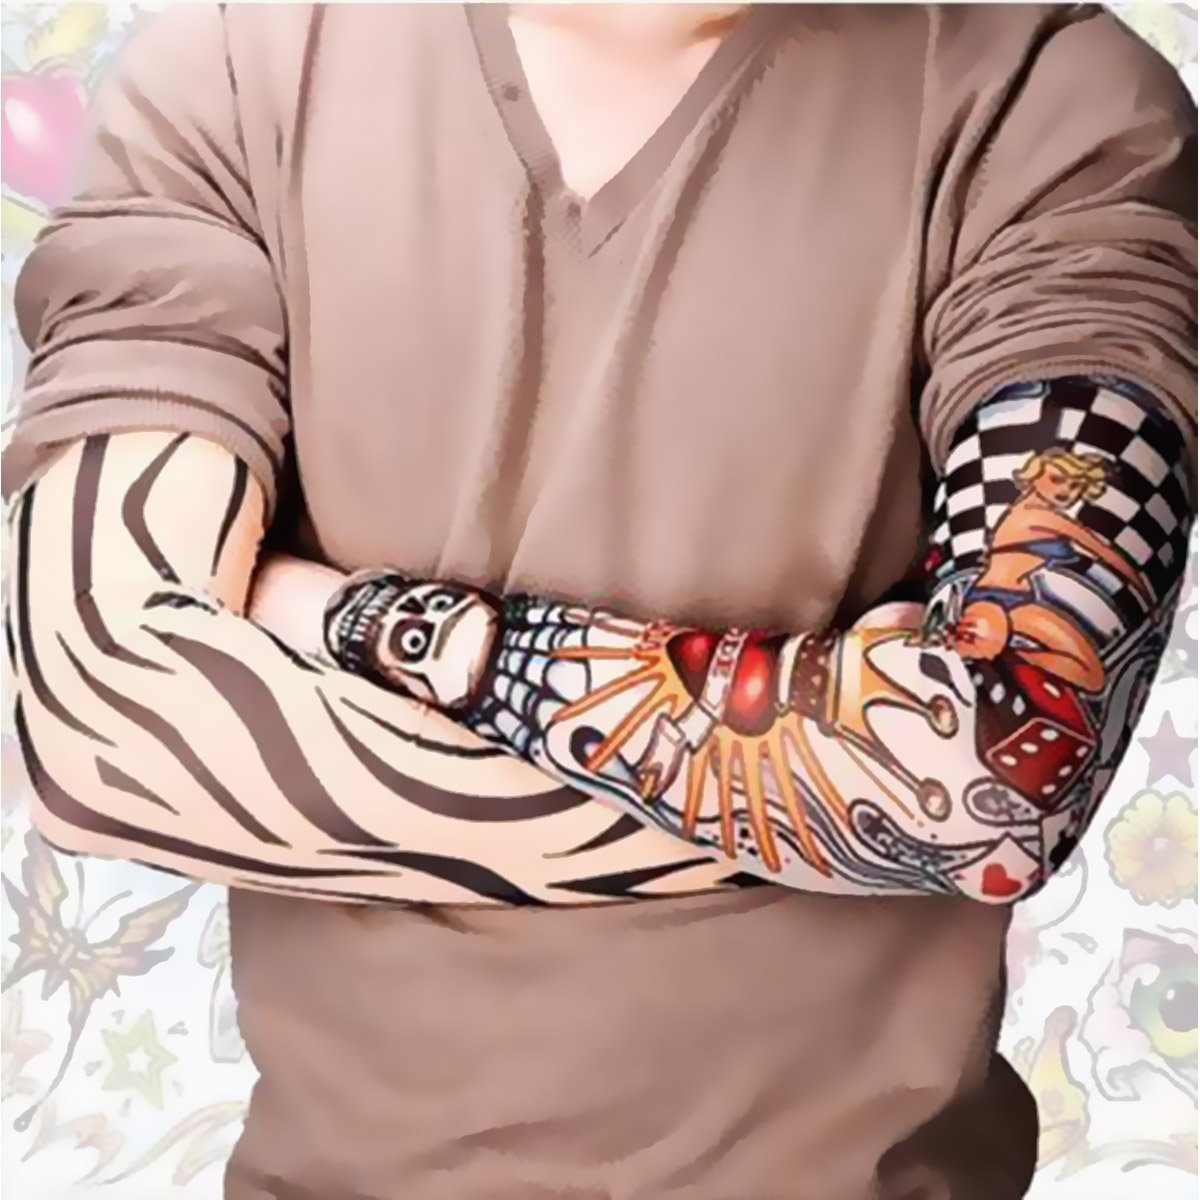 Temporary Tattoo Arm Sunscreen Sleeves (6 pcs Set )